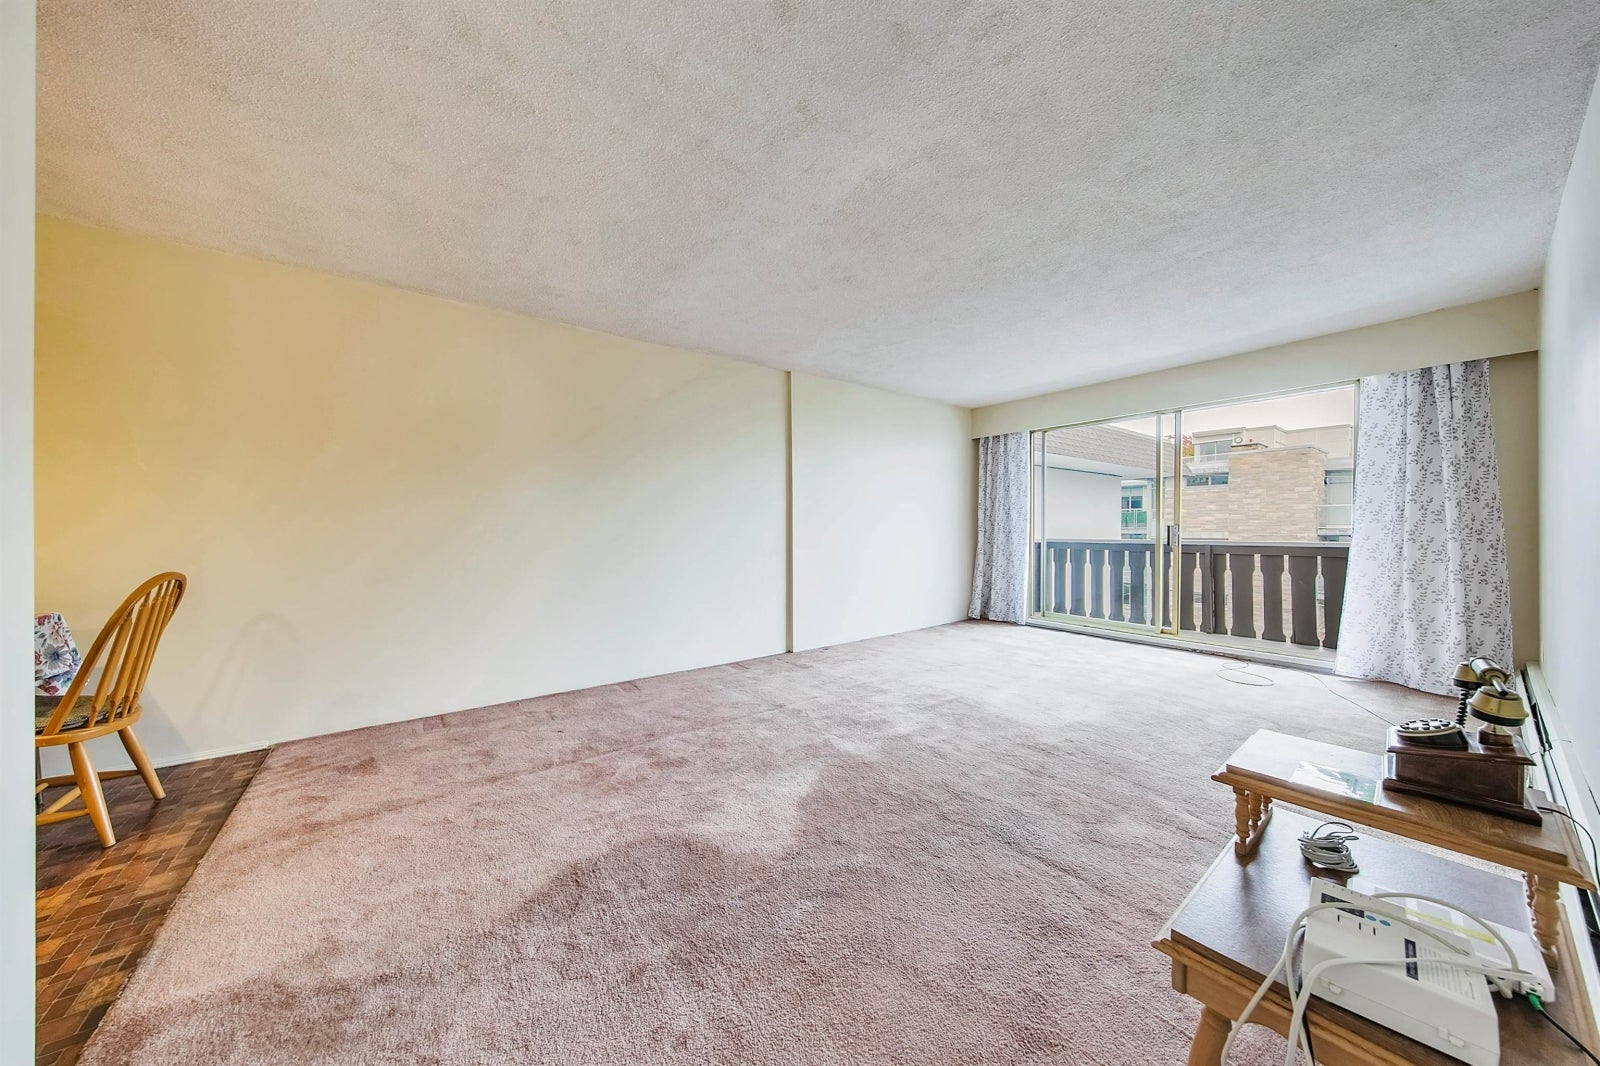 306 1345 CHESTERFIELD AVENUE - Central Lonsdale Apartment/Condo for sale, 1 Bedroom (R2622121) #7